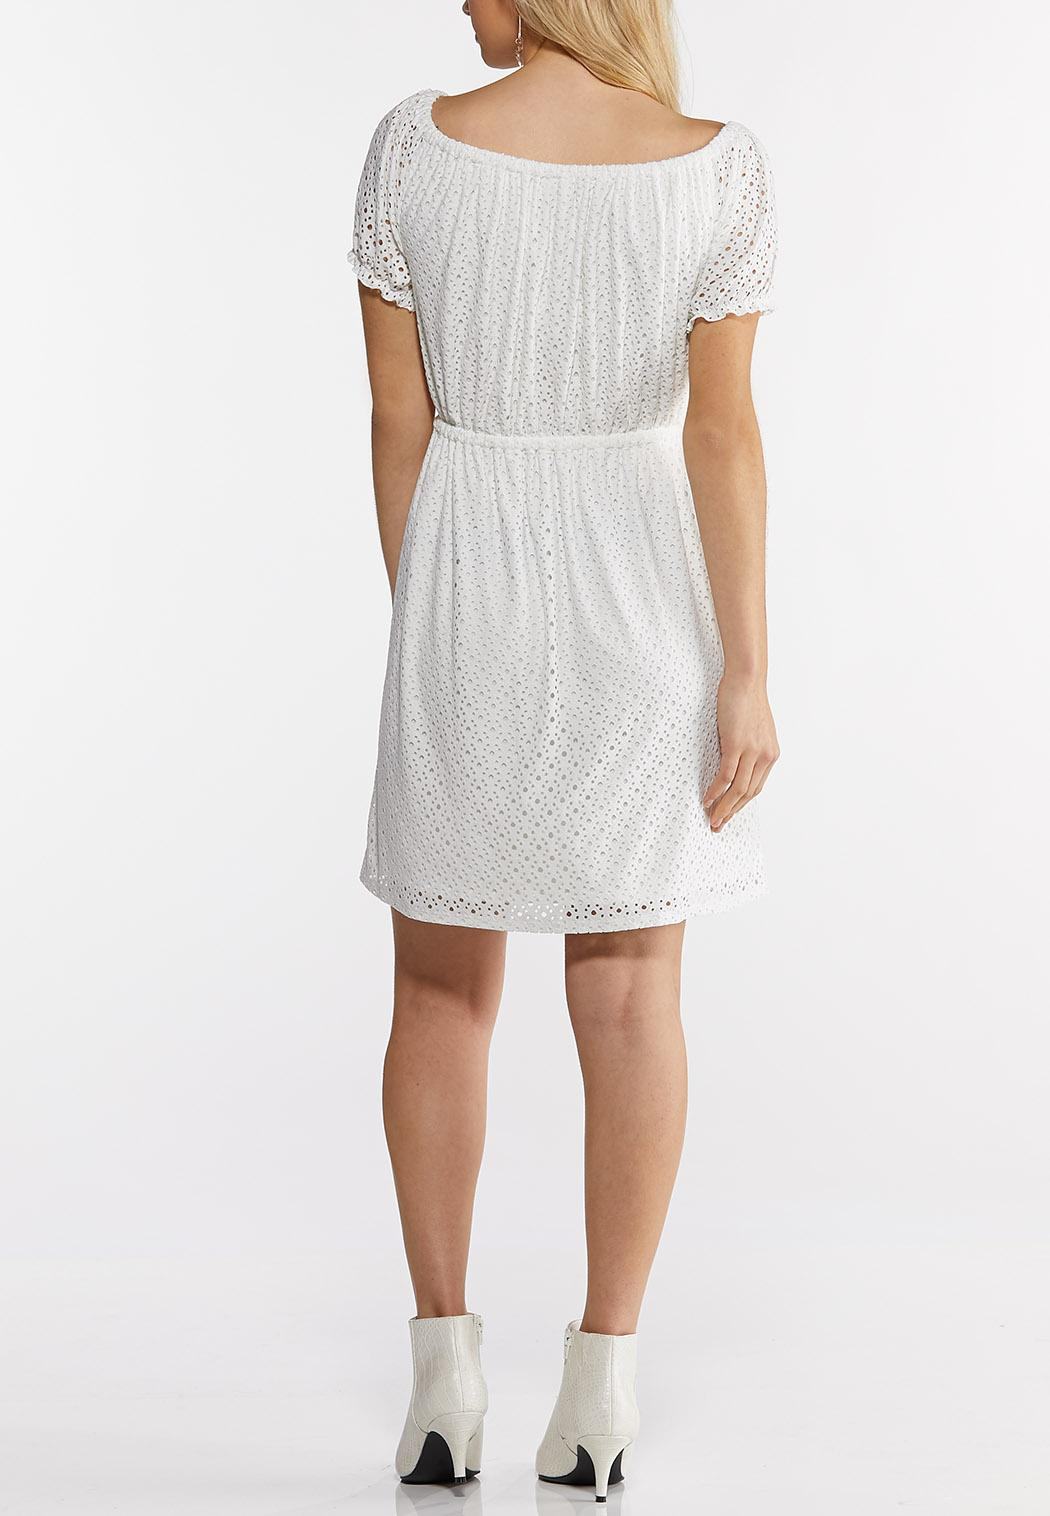 Eyelet Tie Waist Dress (Item #44232194)